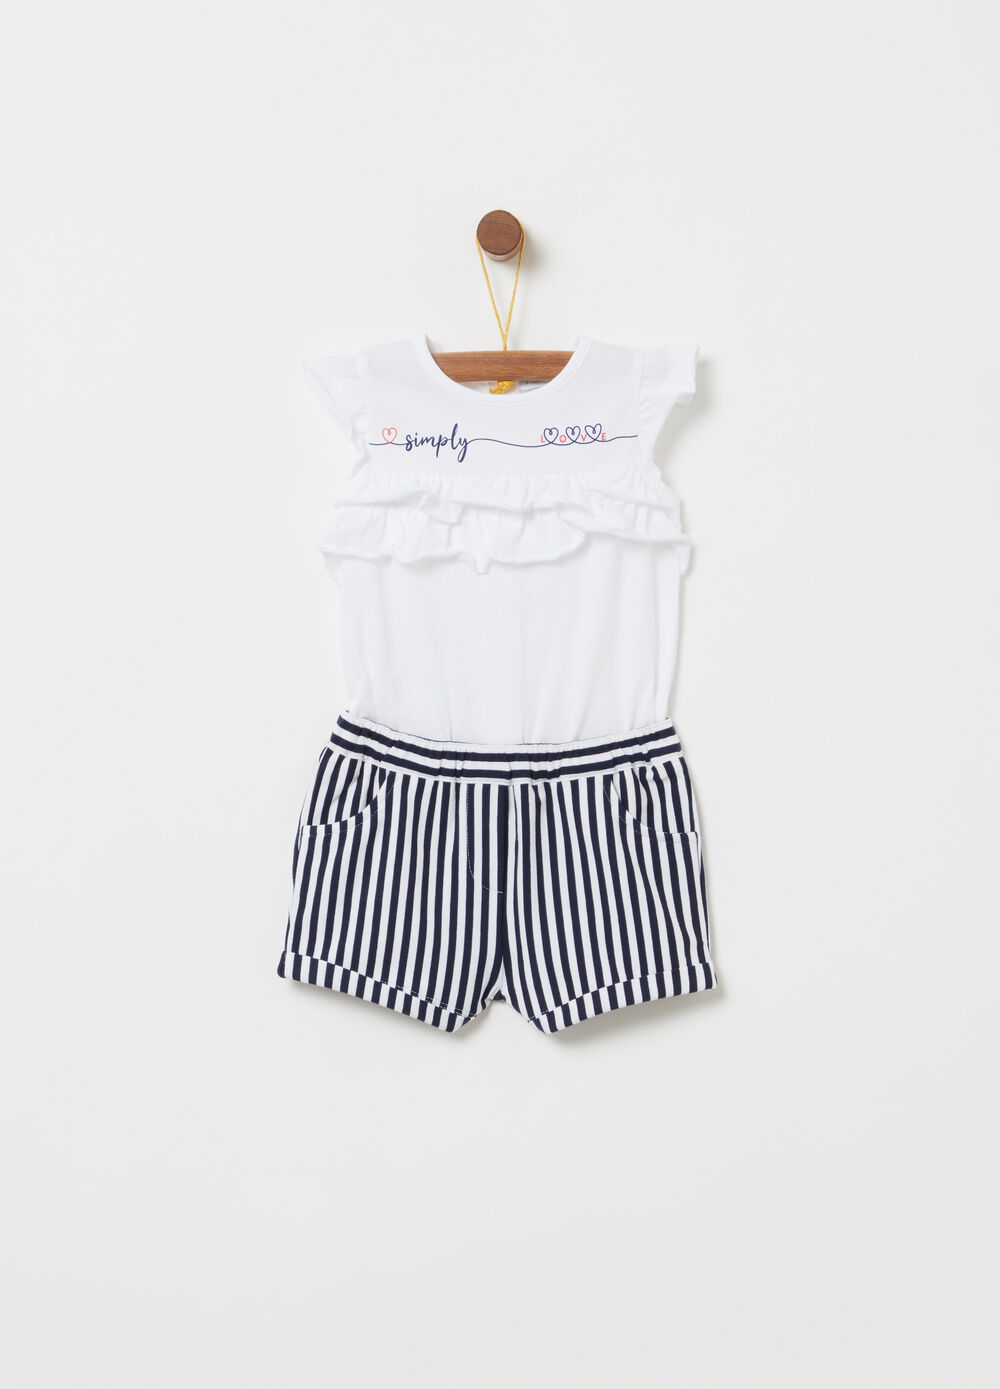 Romper suit with frills, print and stripes